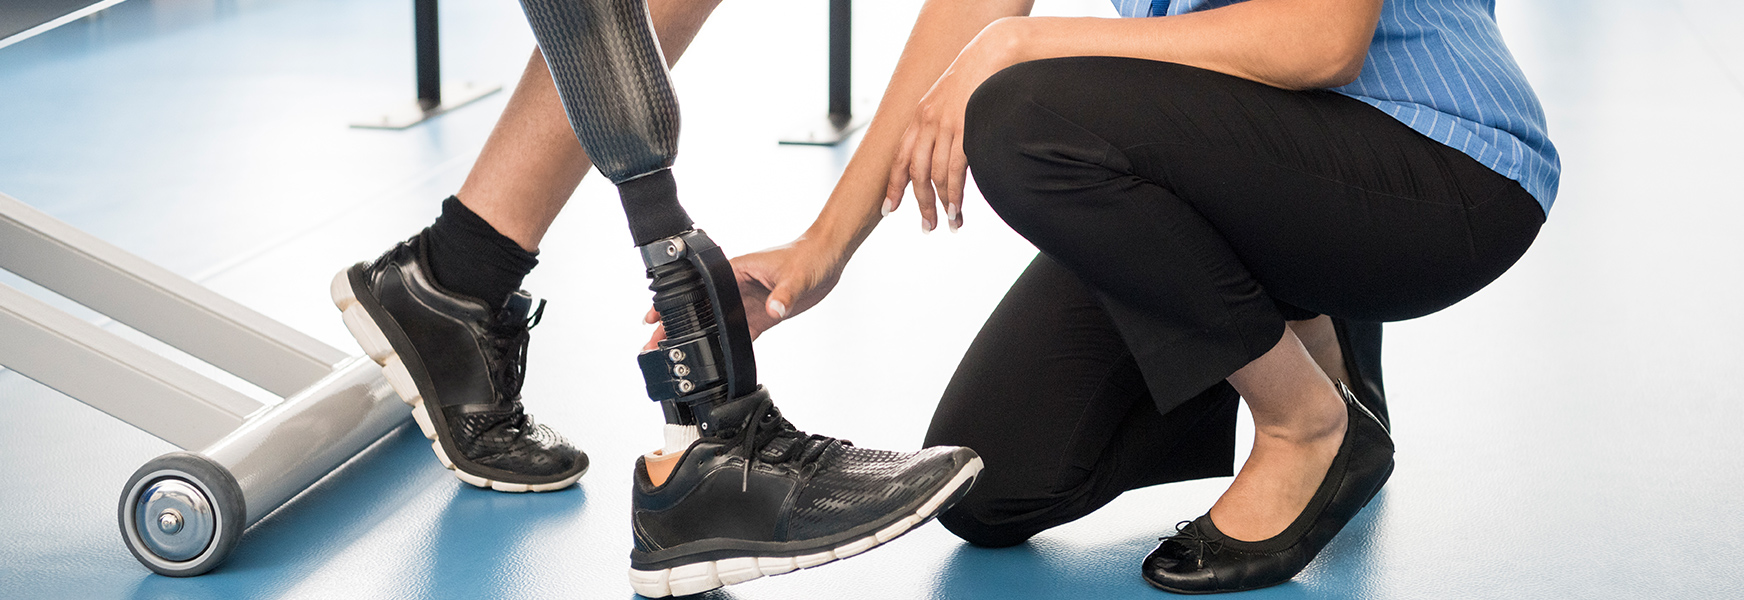 Medical professional assists patient with prosthetic leg